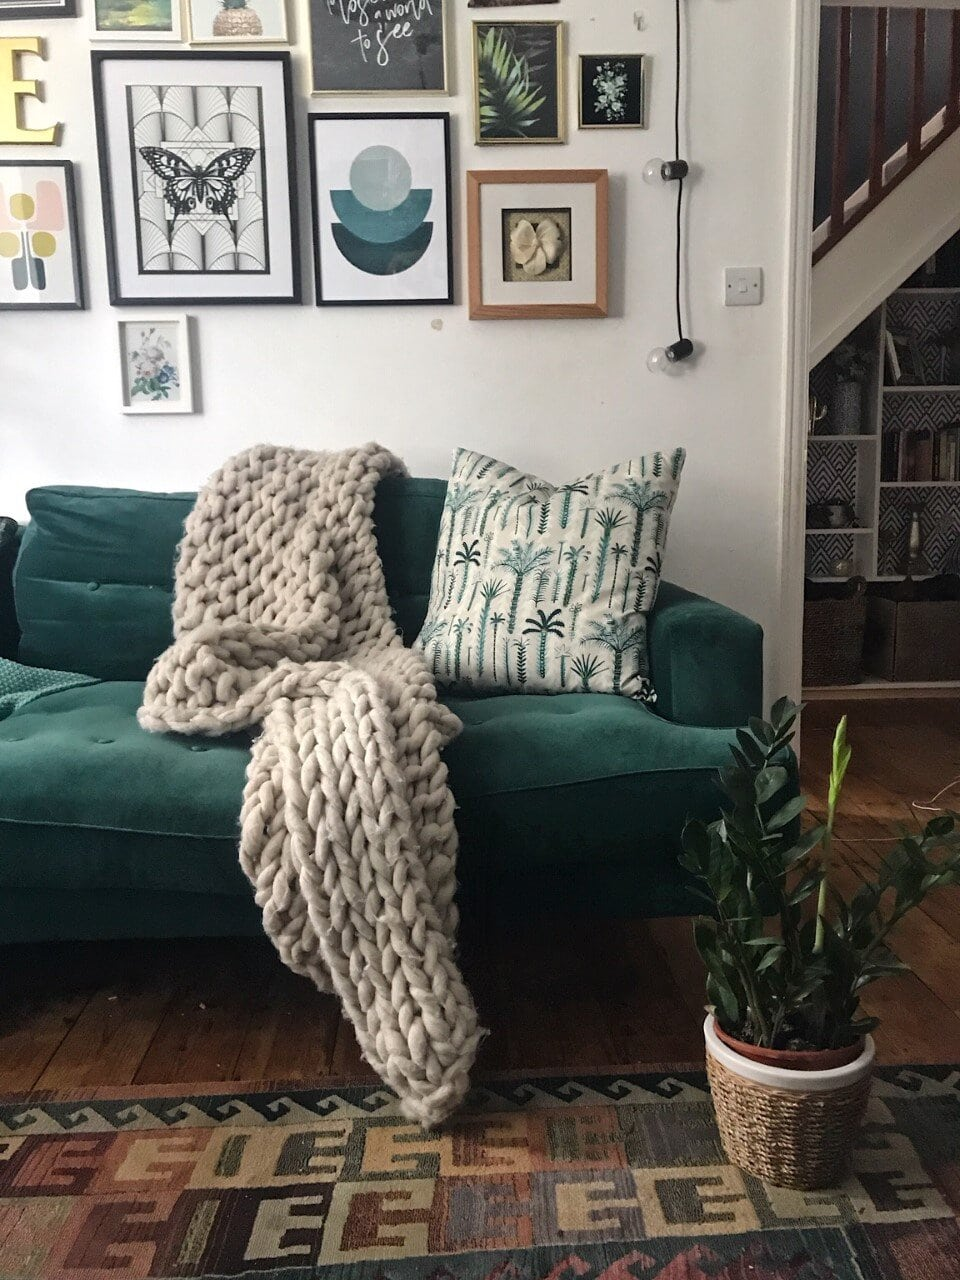 sustainable, sustainability, sustainable home, environment, environmentally friendly, upcycle, reuse, eco friendly, recycle, buy less, living room